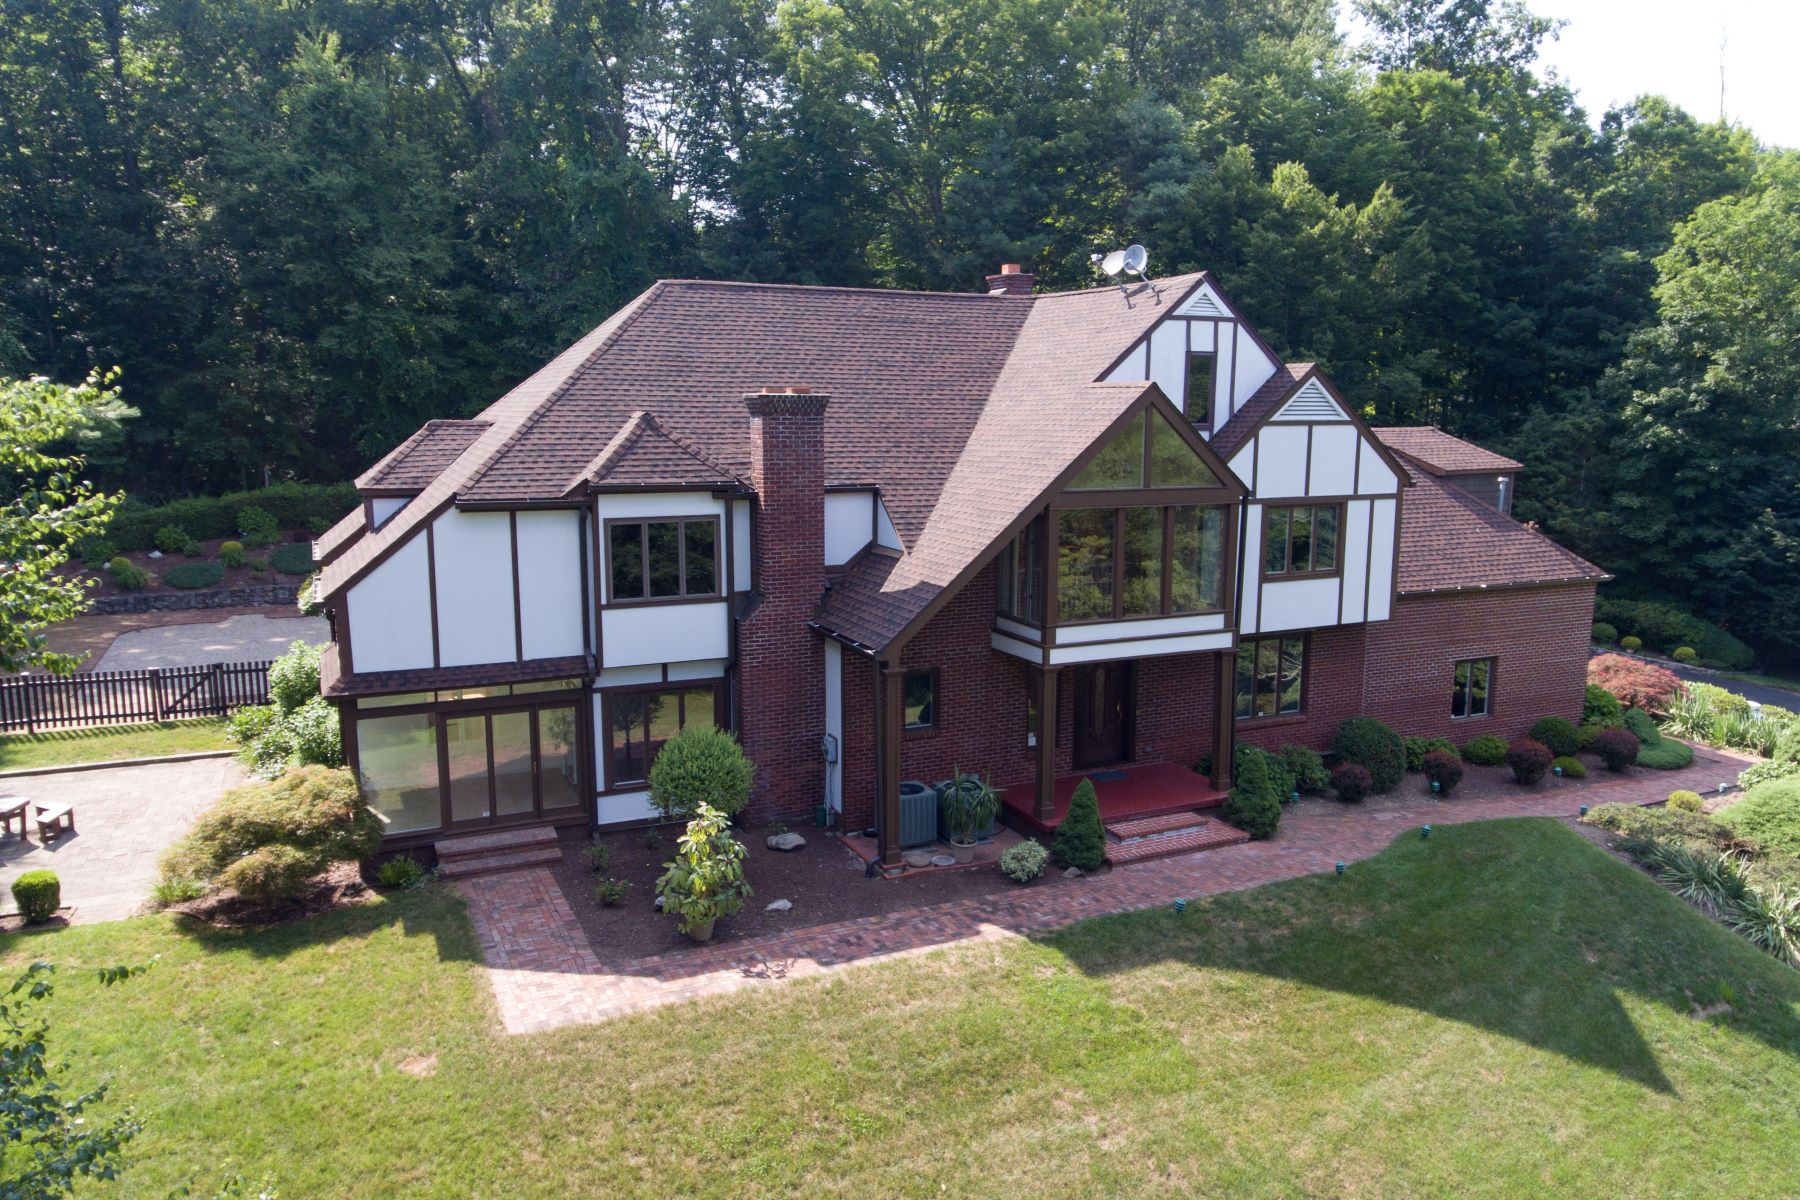 Single Family Home for Sale at Beautifully Appointed Contemporary Tudor Style Home 14 Signal Hill Road Brookfield, Connecticut 06804 United States